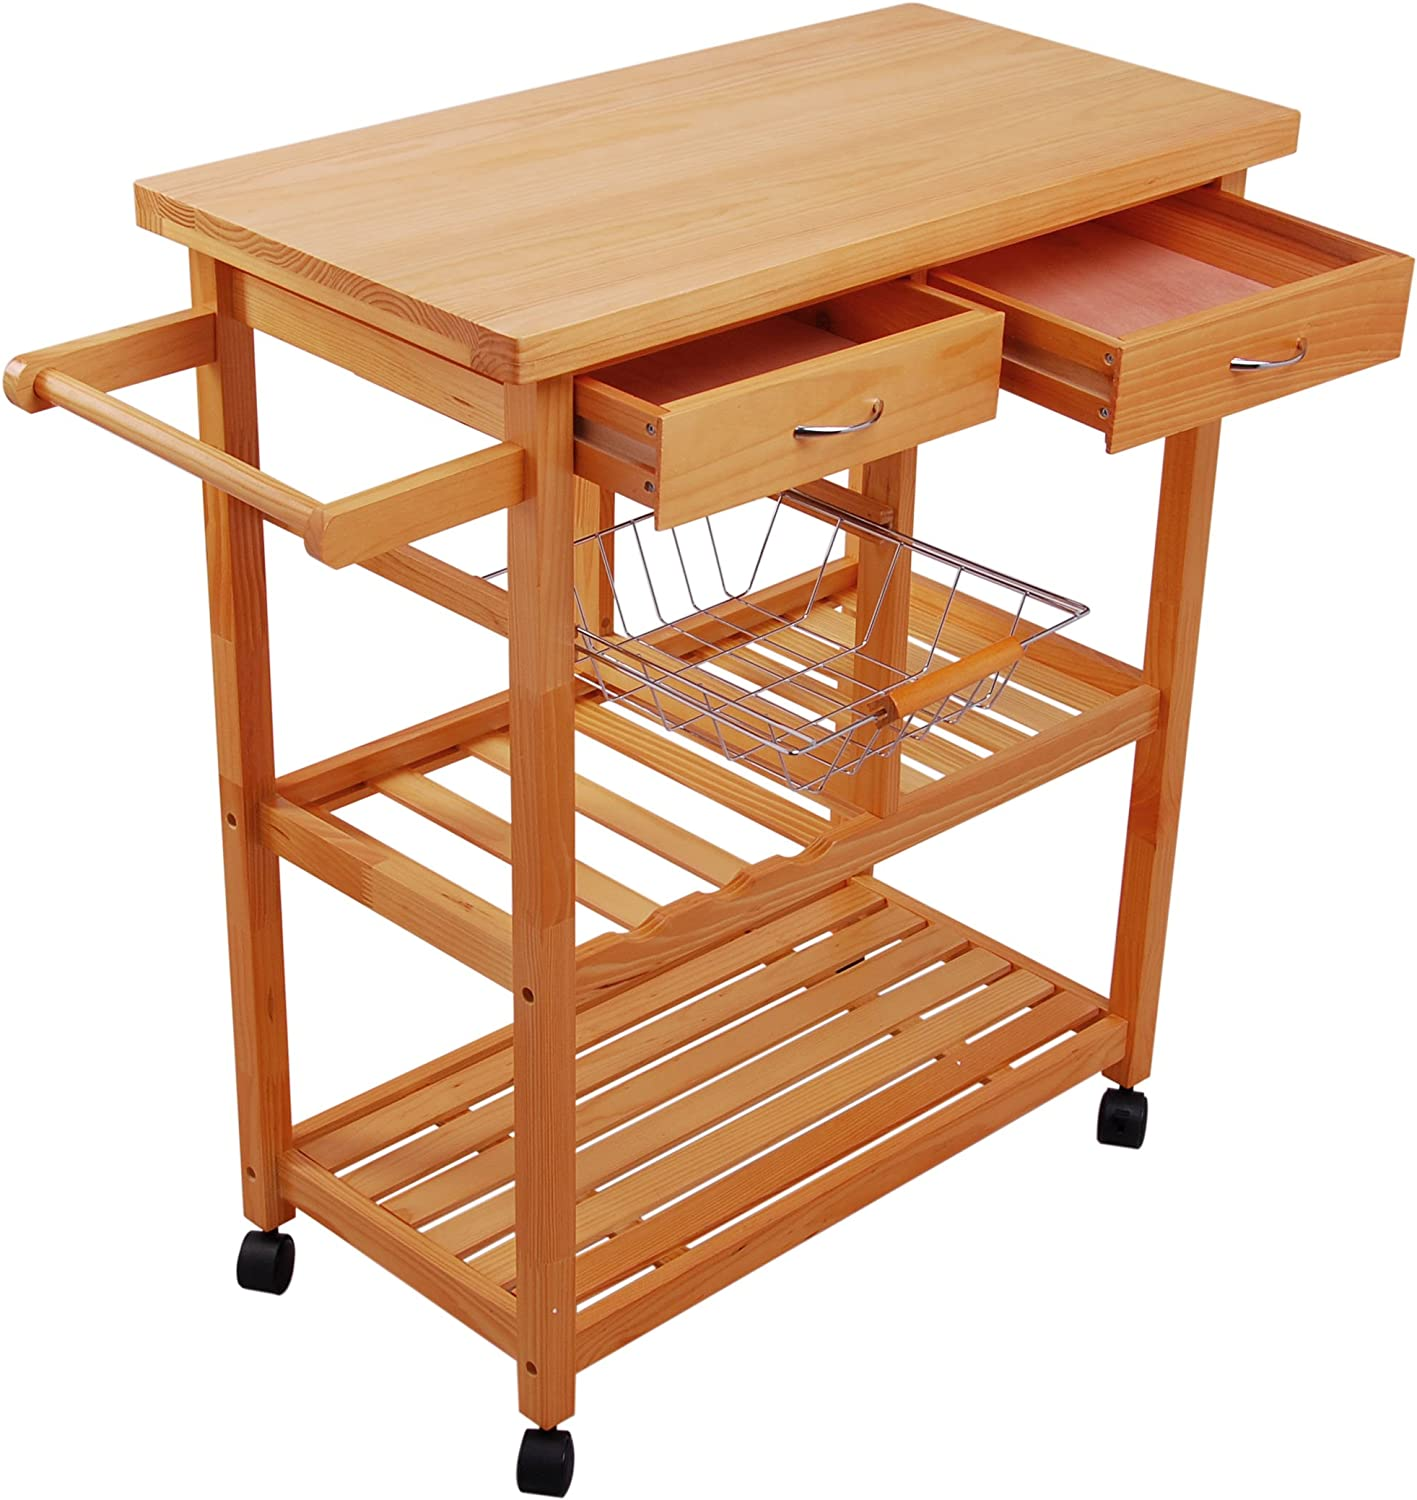 HOMCOM Rolling Kitchen Trolley Portable Kitchen Serving Cart with Drawers Basket and Shelves